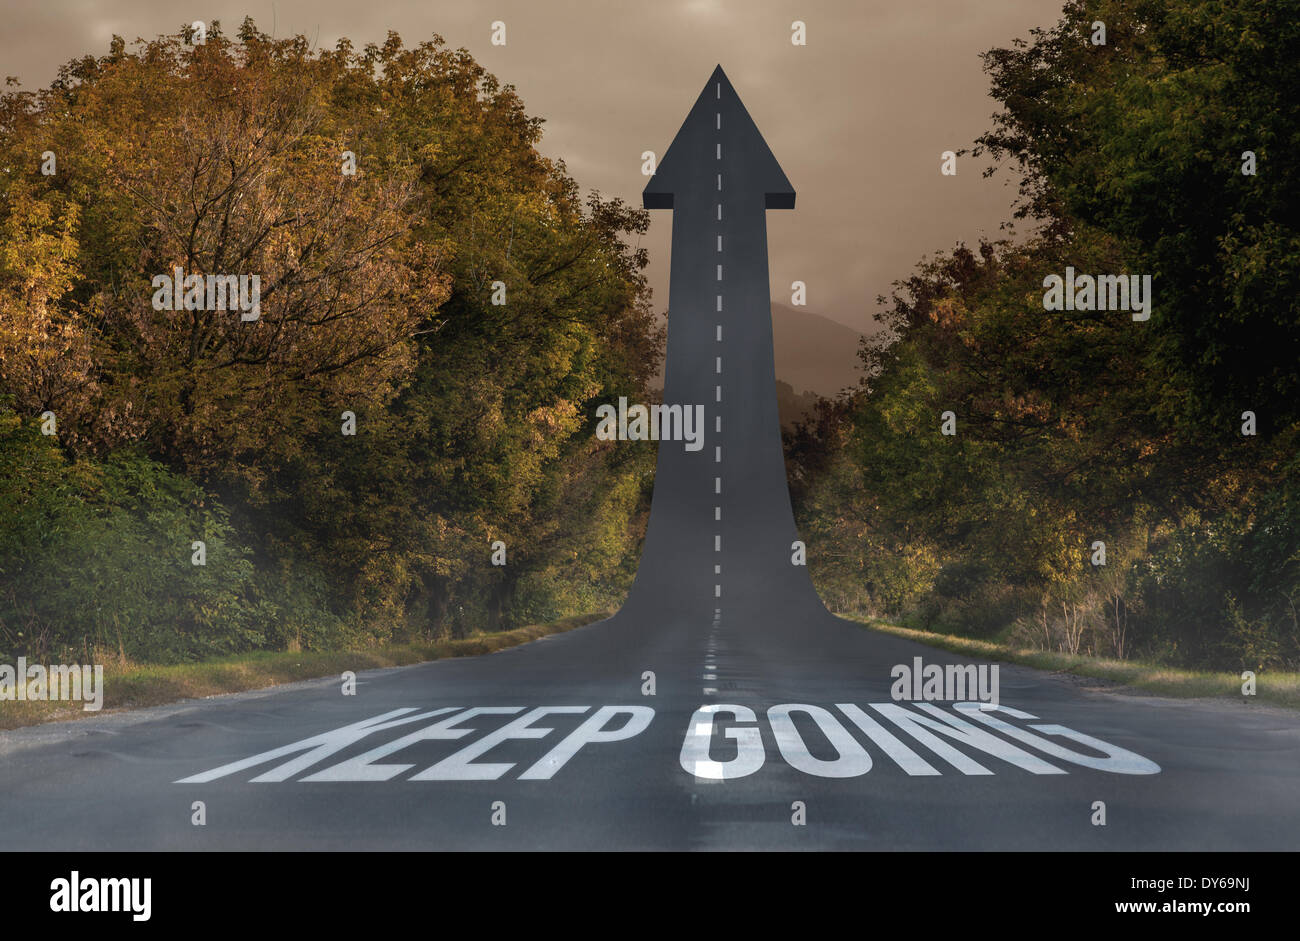 Keep going against road turning into arrow - Stock Image